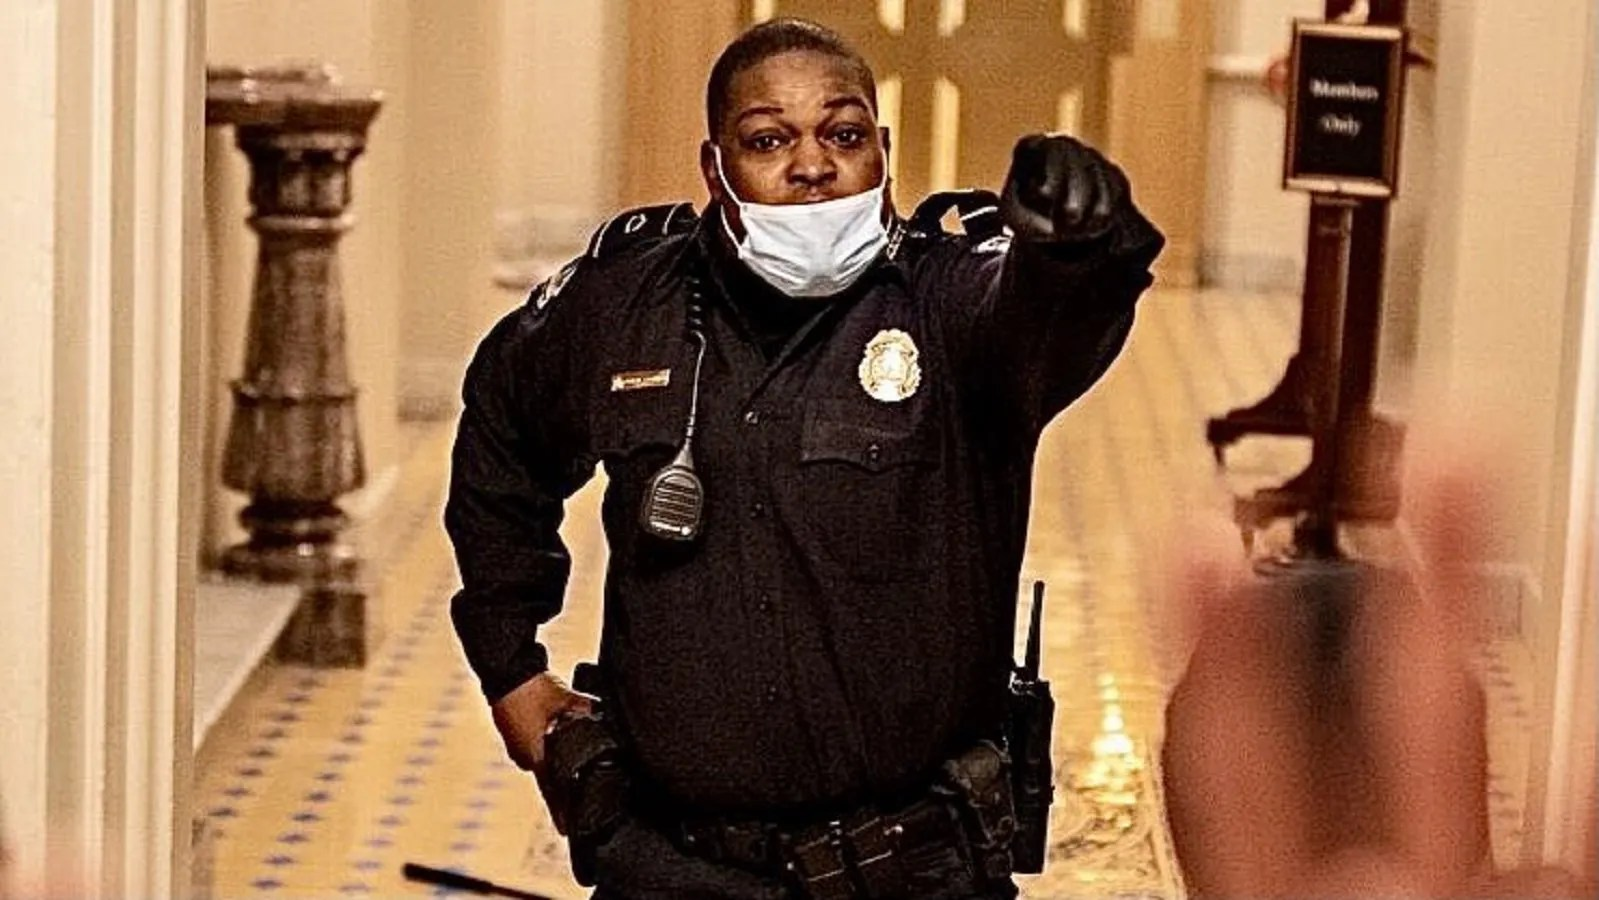 Eugene Goodman| 'The man who saved the Senate': Capitol Hill cop lauded by  netizens for diverting mob from Senate chamber | Trending & Viral News